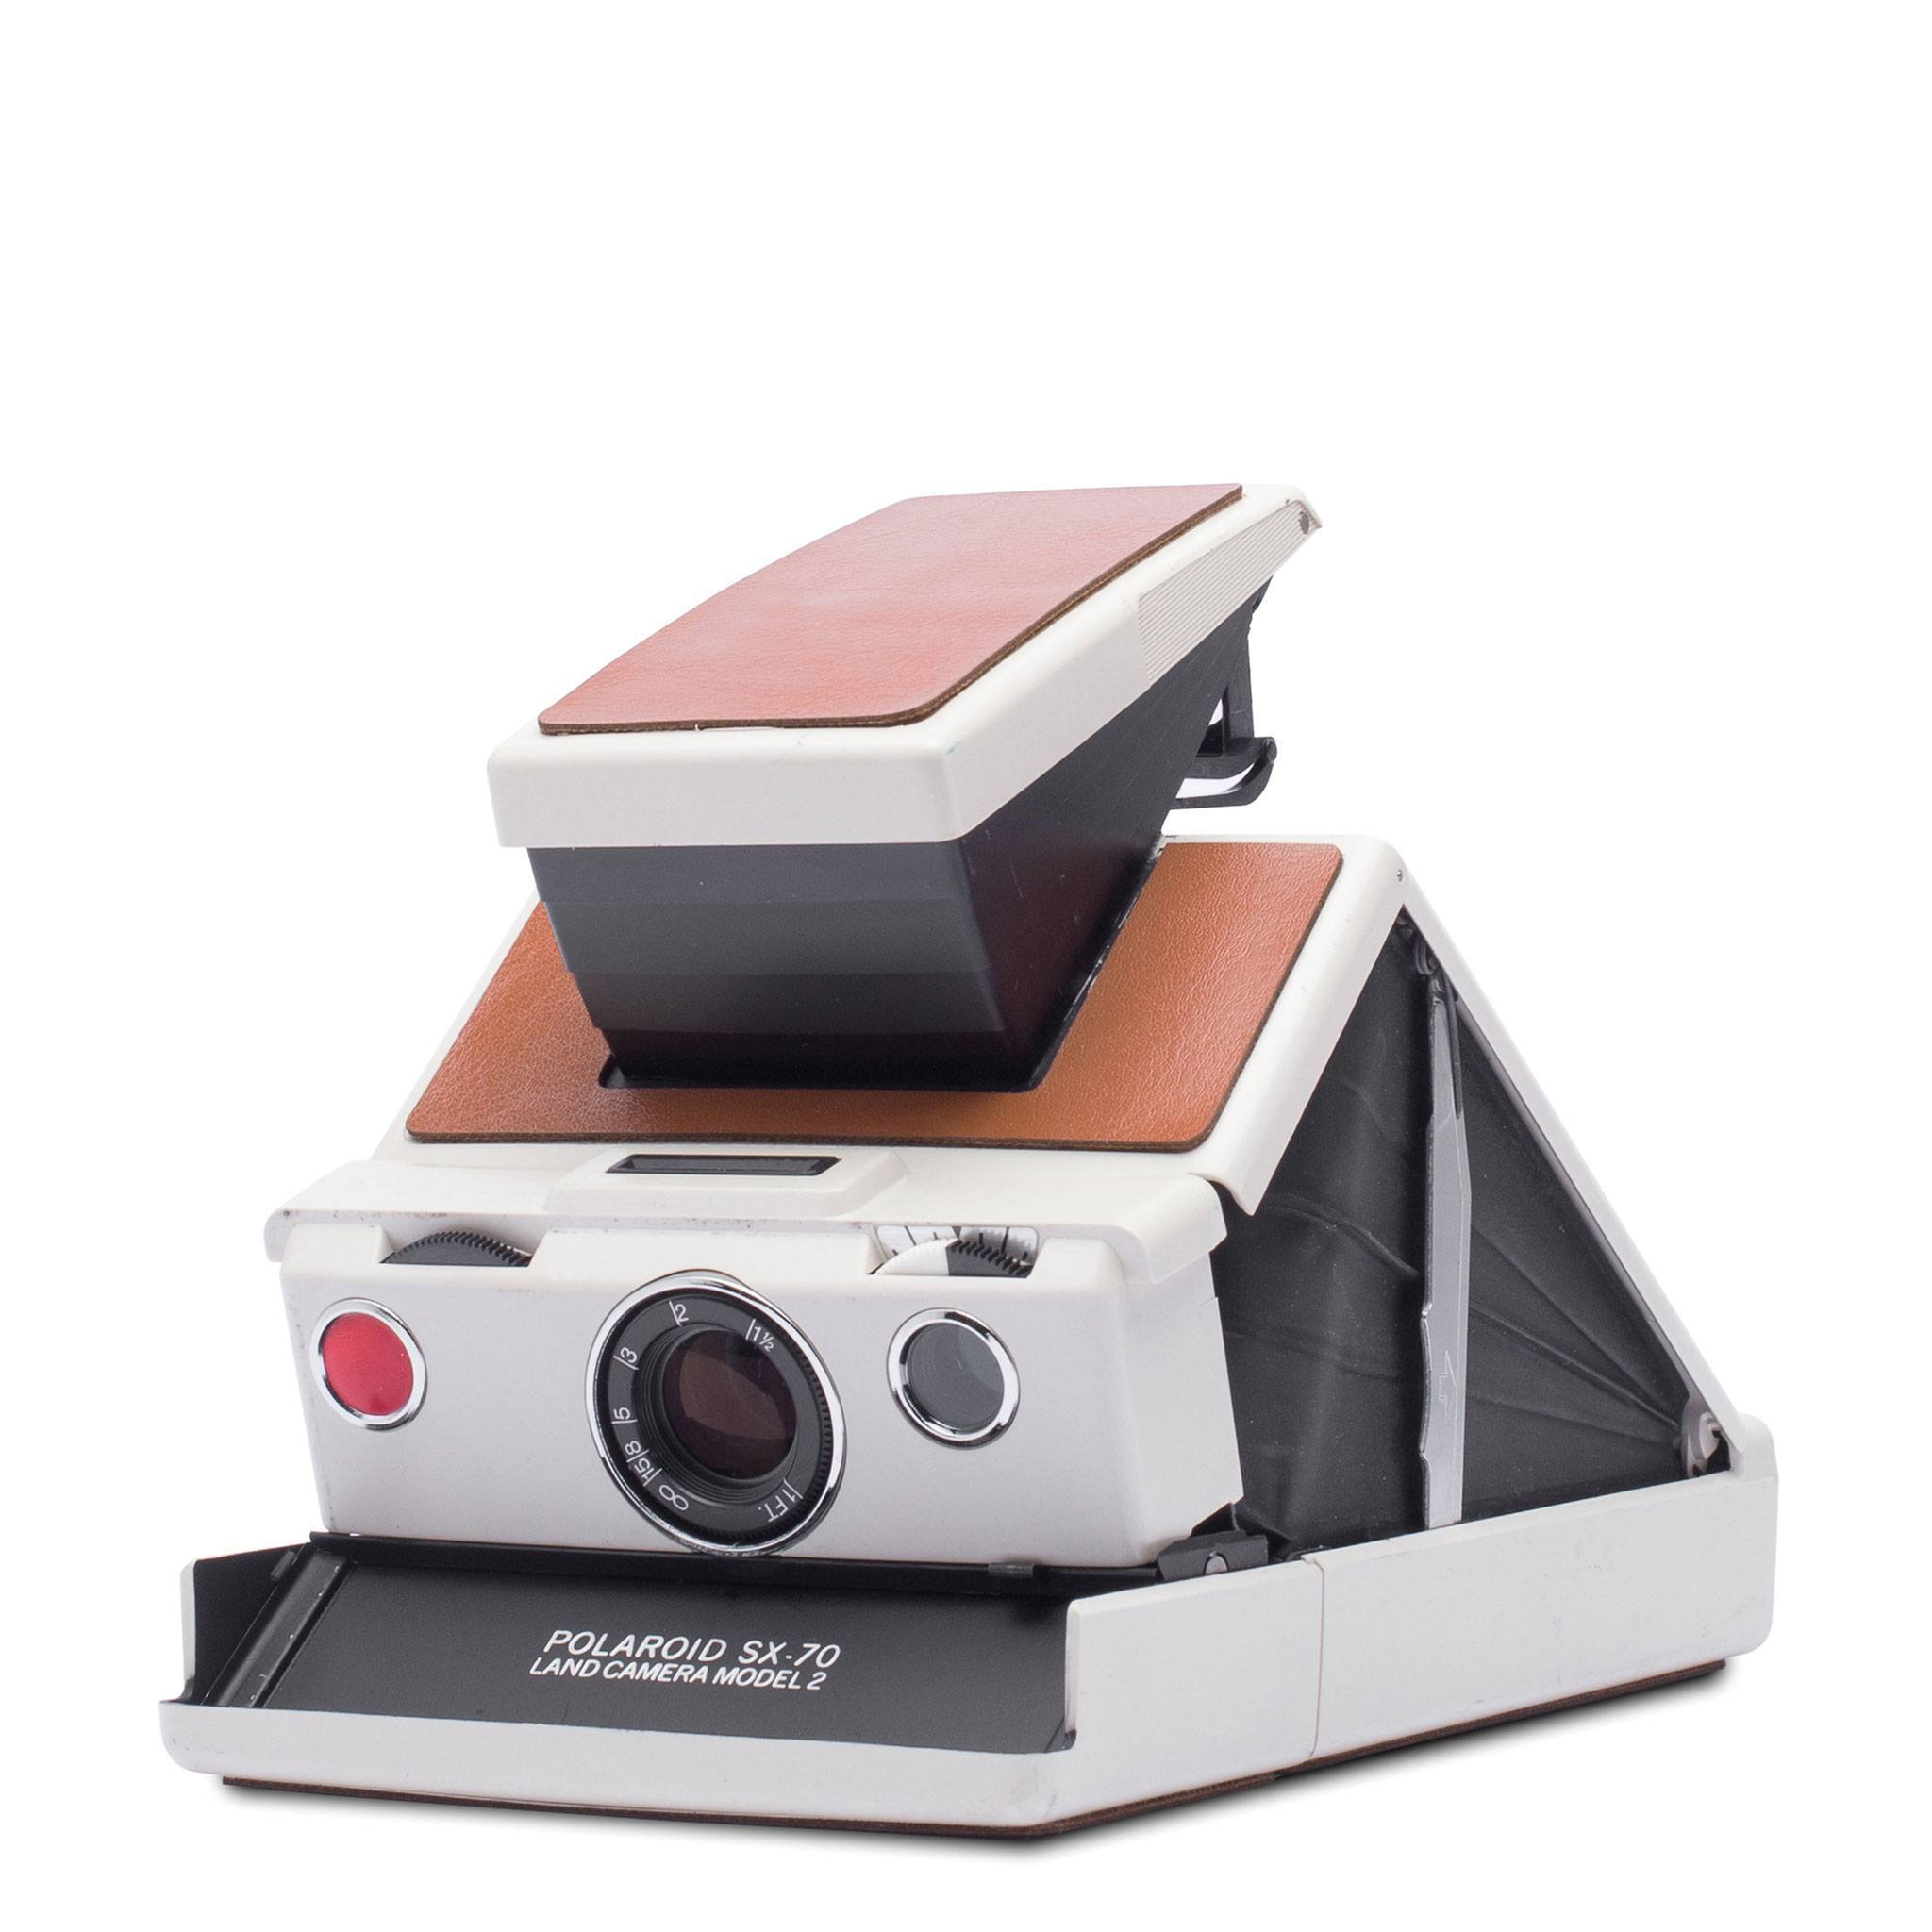 white-brown-polaroid-sx70-camera-004697-angle.jpg